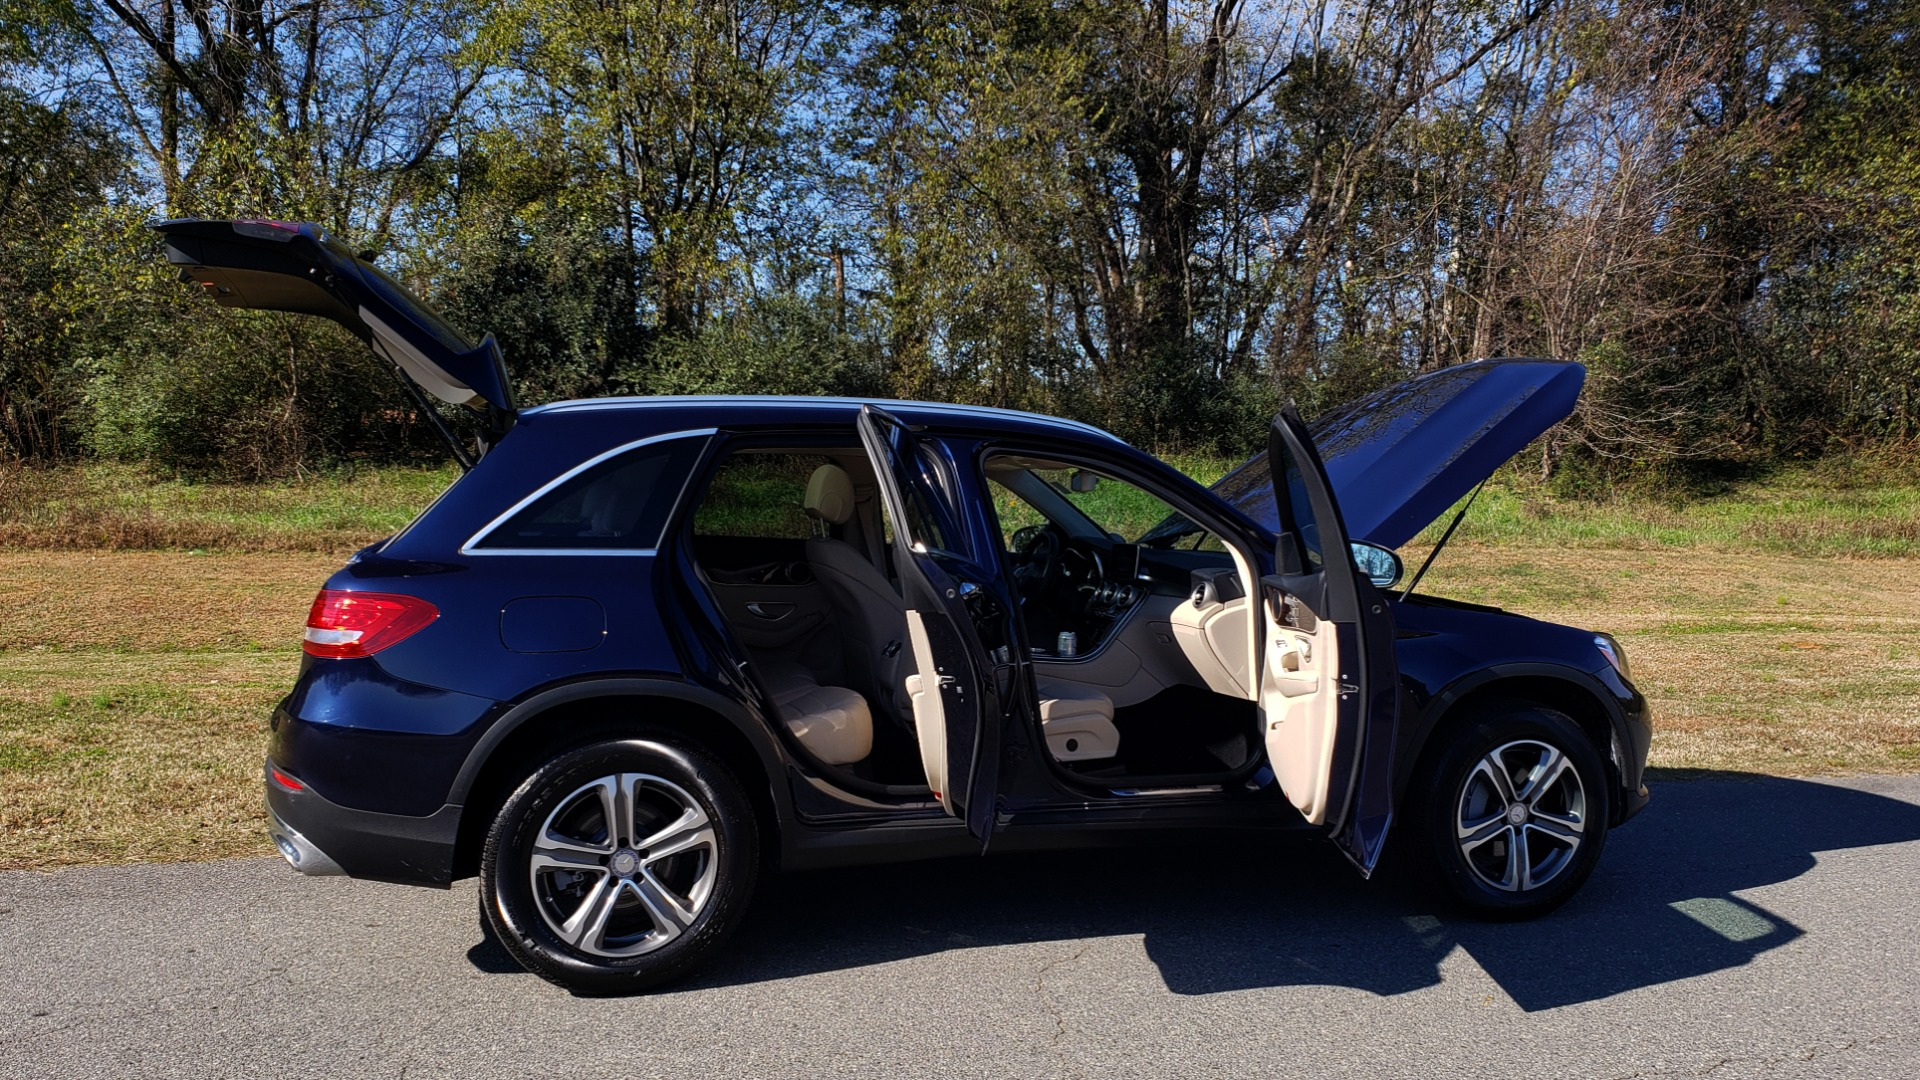 Used 2017 Mercedes-Benz GLC 300 4MATIC / PREM / NAV / KEYLESS-GO / SUNROOF / REARVIEW for sale Sold at Formula Imports in Charlotte NC 28227 15